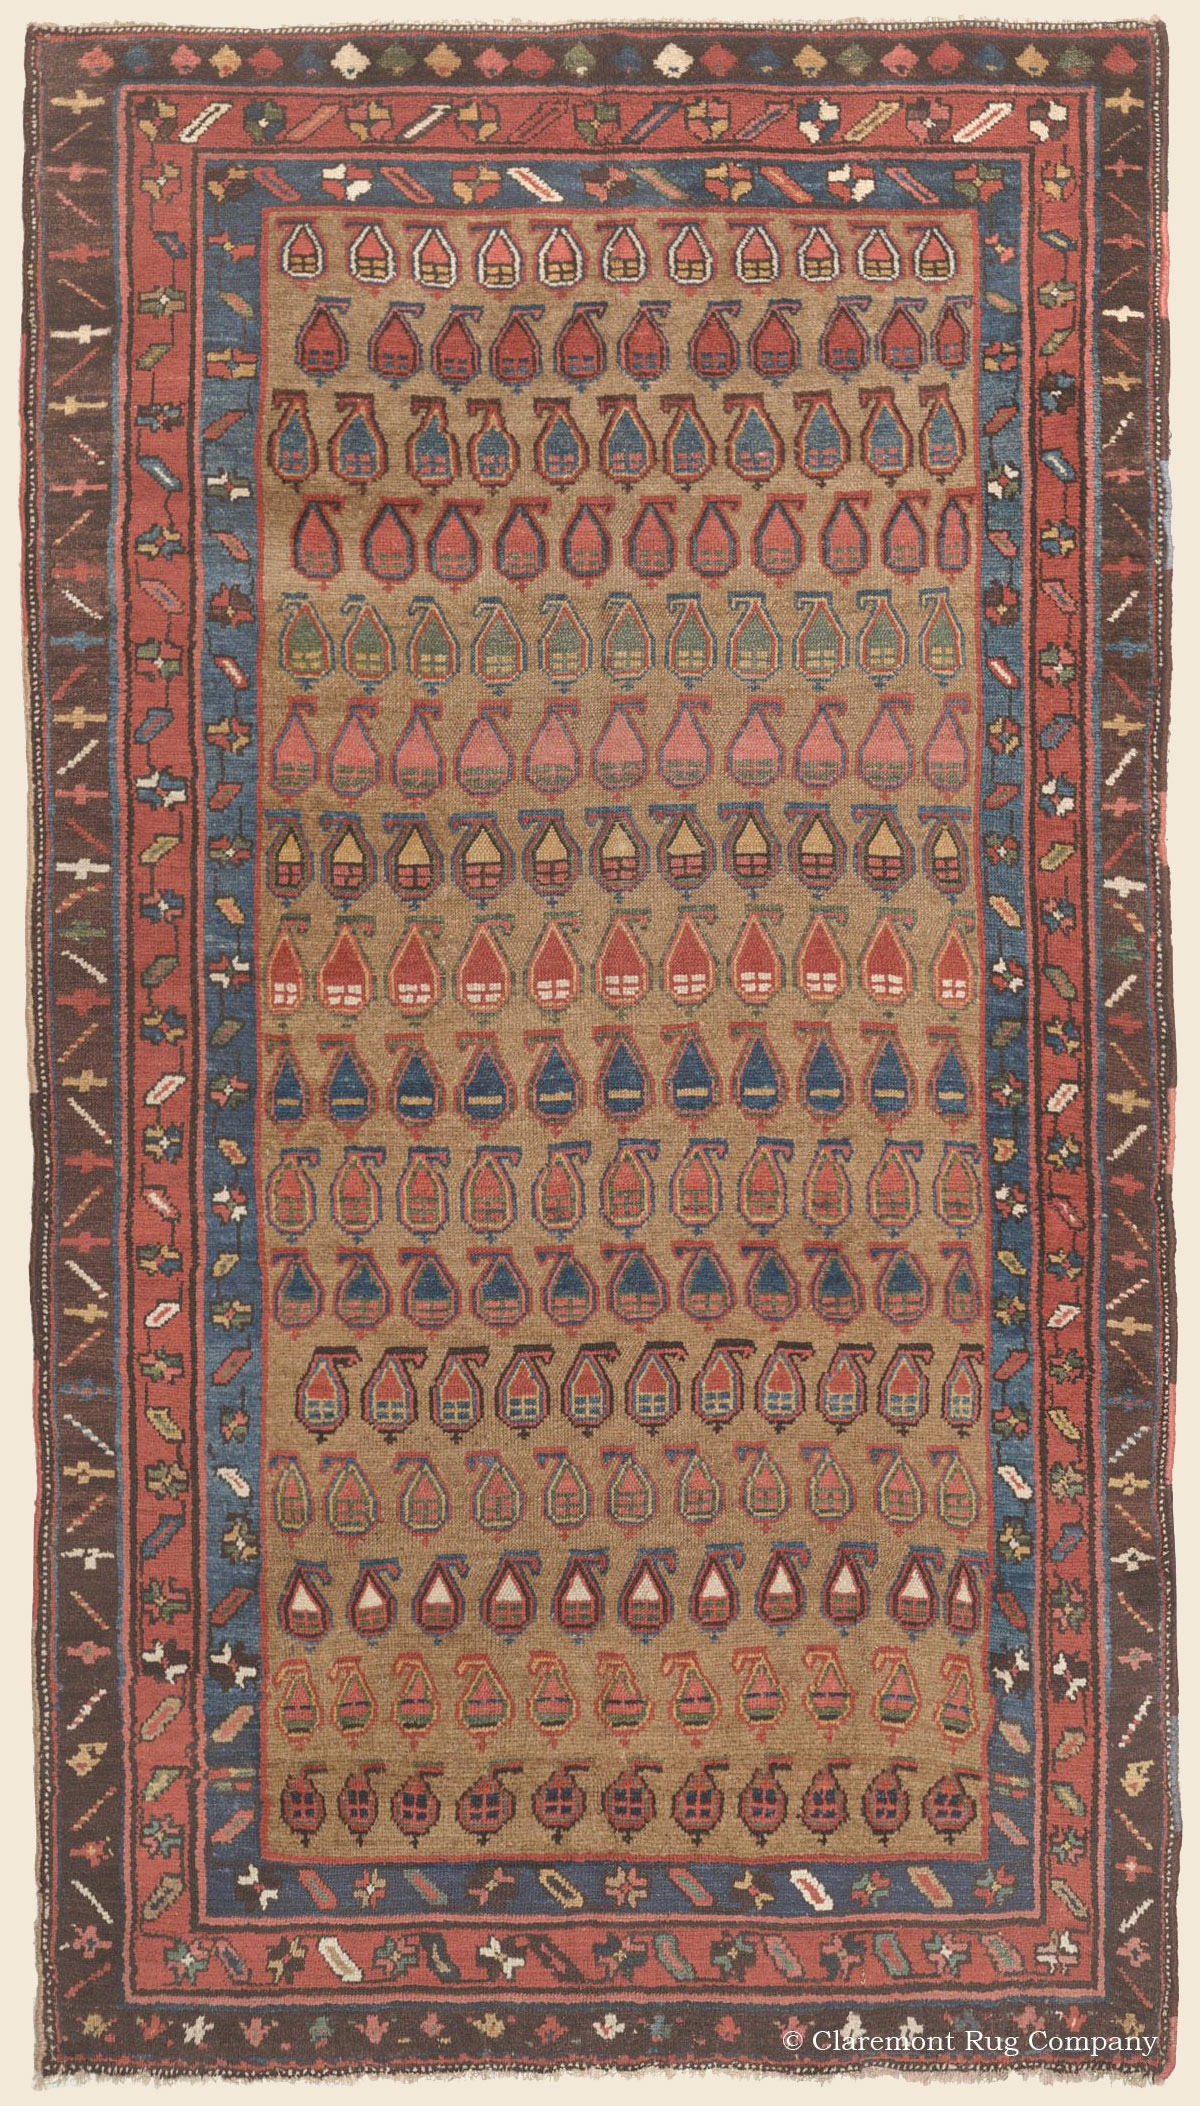 Click for more information about this Northwest Persian Kurdish Camelhair rug